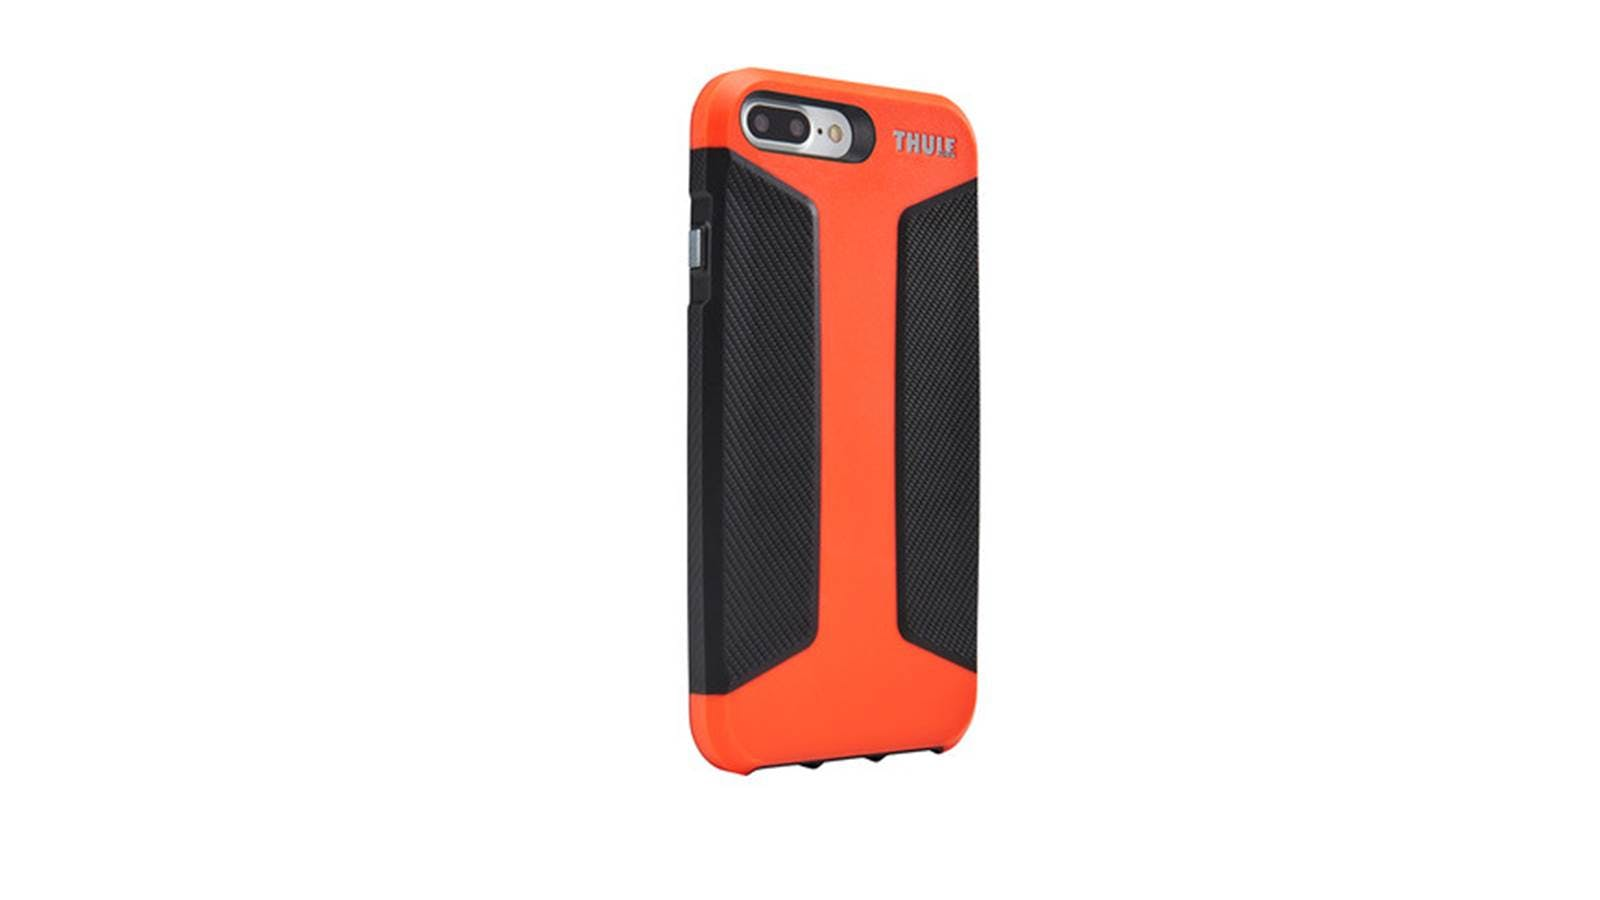 Home :: Smart Tech & Phones :: Phone Accessories :: Cases & Covers :: Thule  Atmos X3 TL-TAIE3126 iPhone 7 Case - Fiery Coral / Dark Shadow